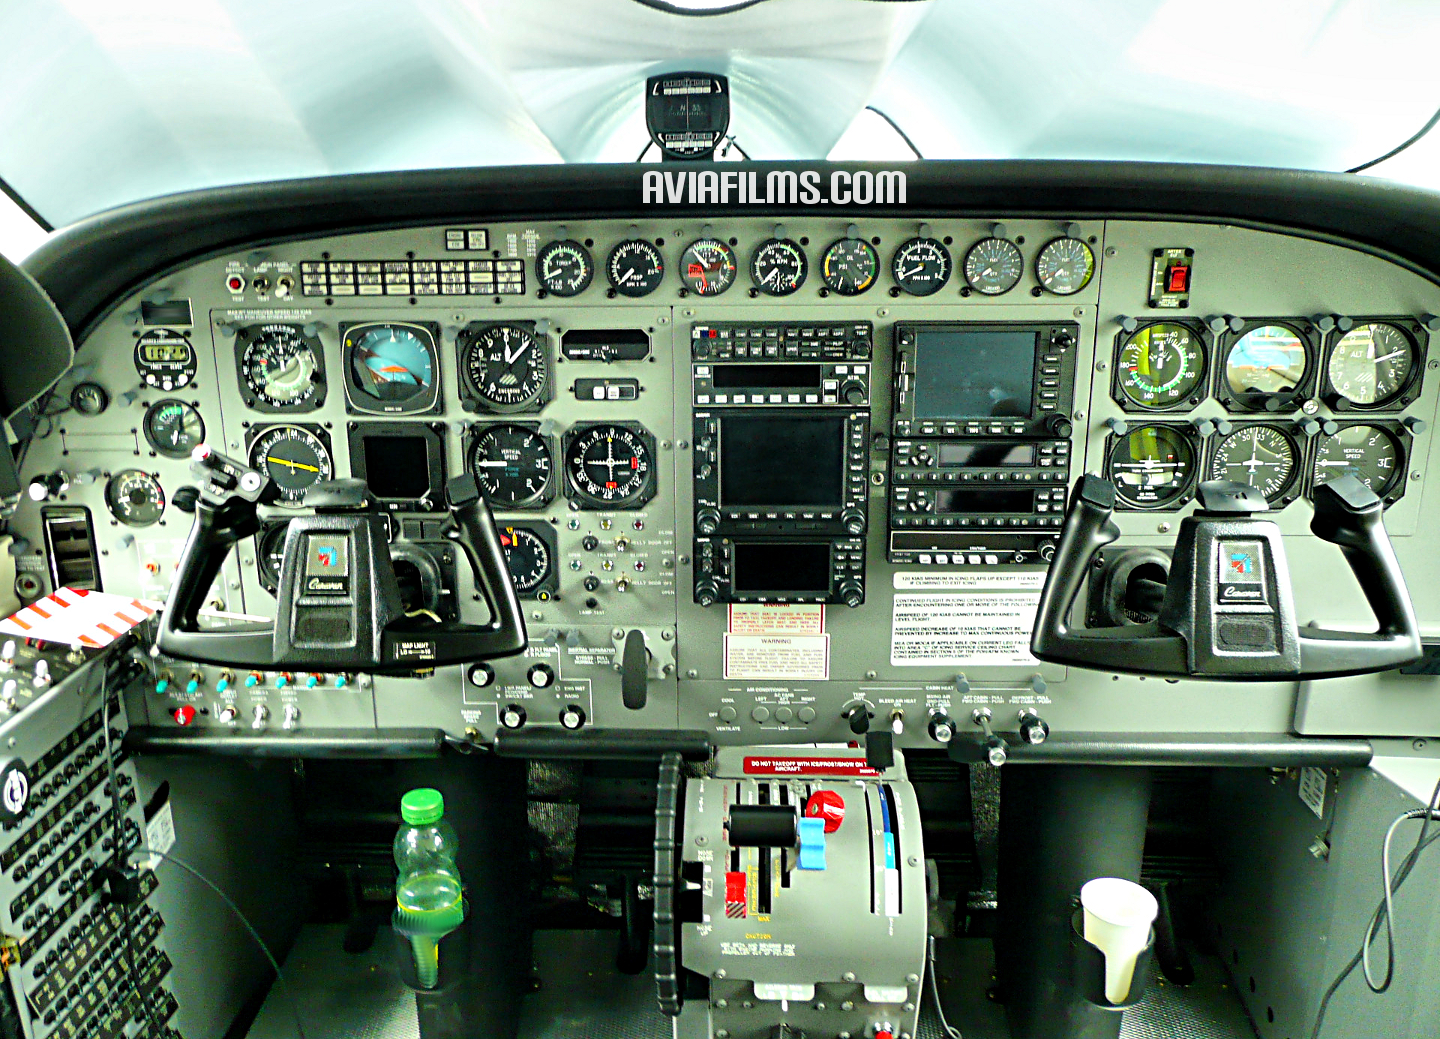 cessna 152 electrical system diagram with Cessna Engine Diagram on What Could Cause Uneven Fuel Levels In A Cessna 172 moreover Ubbthreads as well Cessna 172 Wiring Diagram likewise Cessna Alternator Wiring Diagram also 195990 Toc.